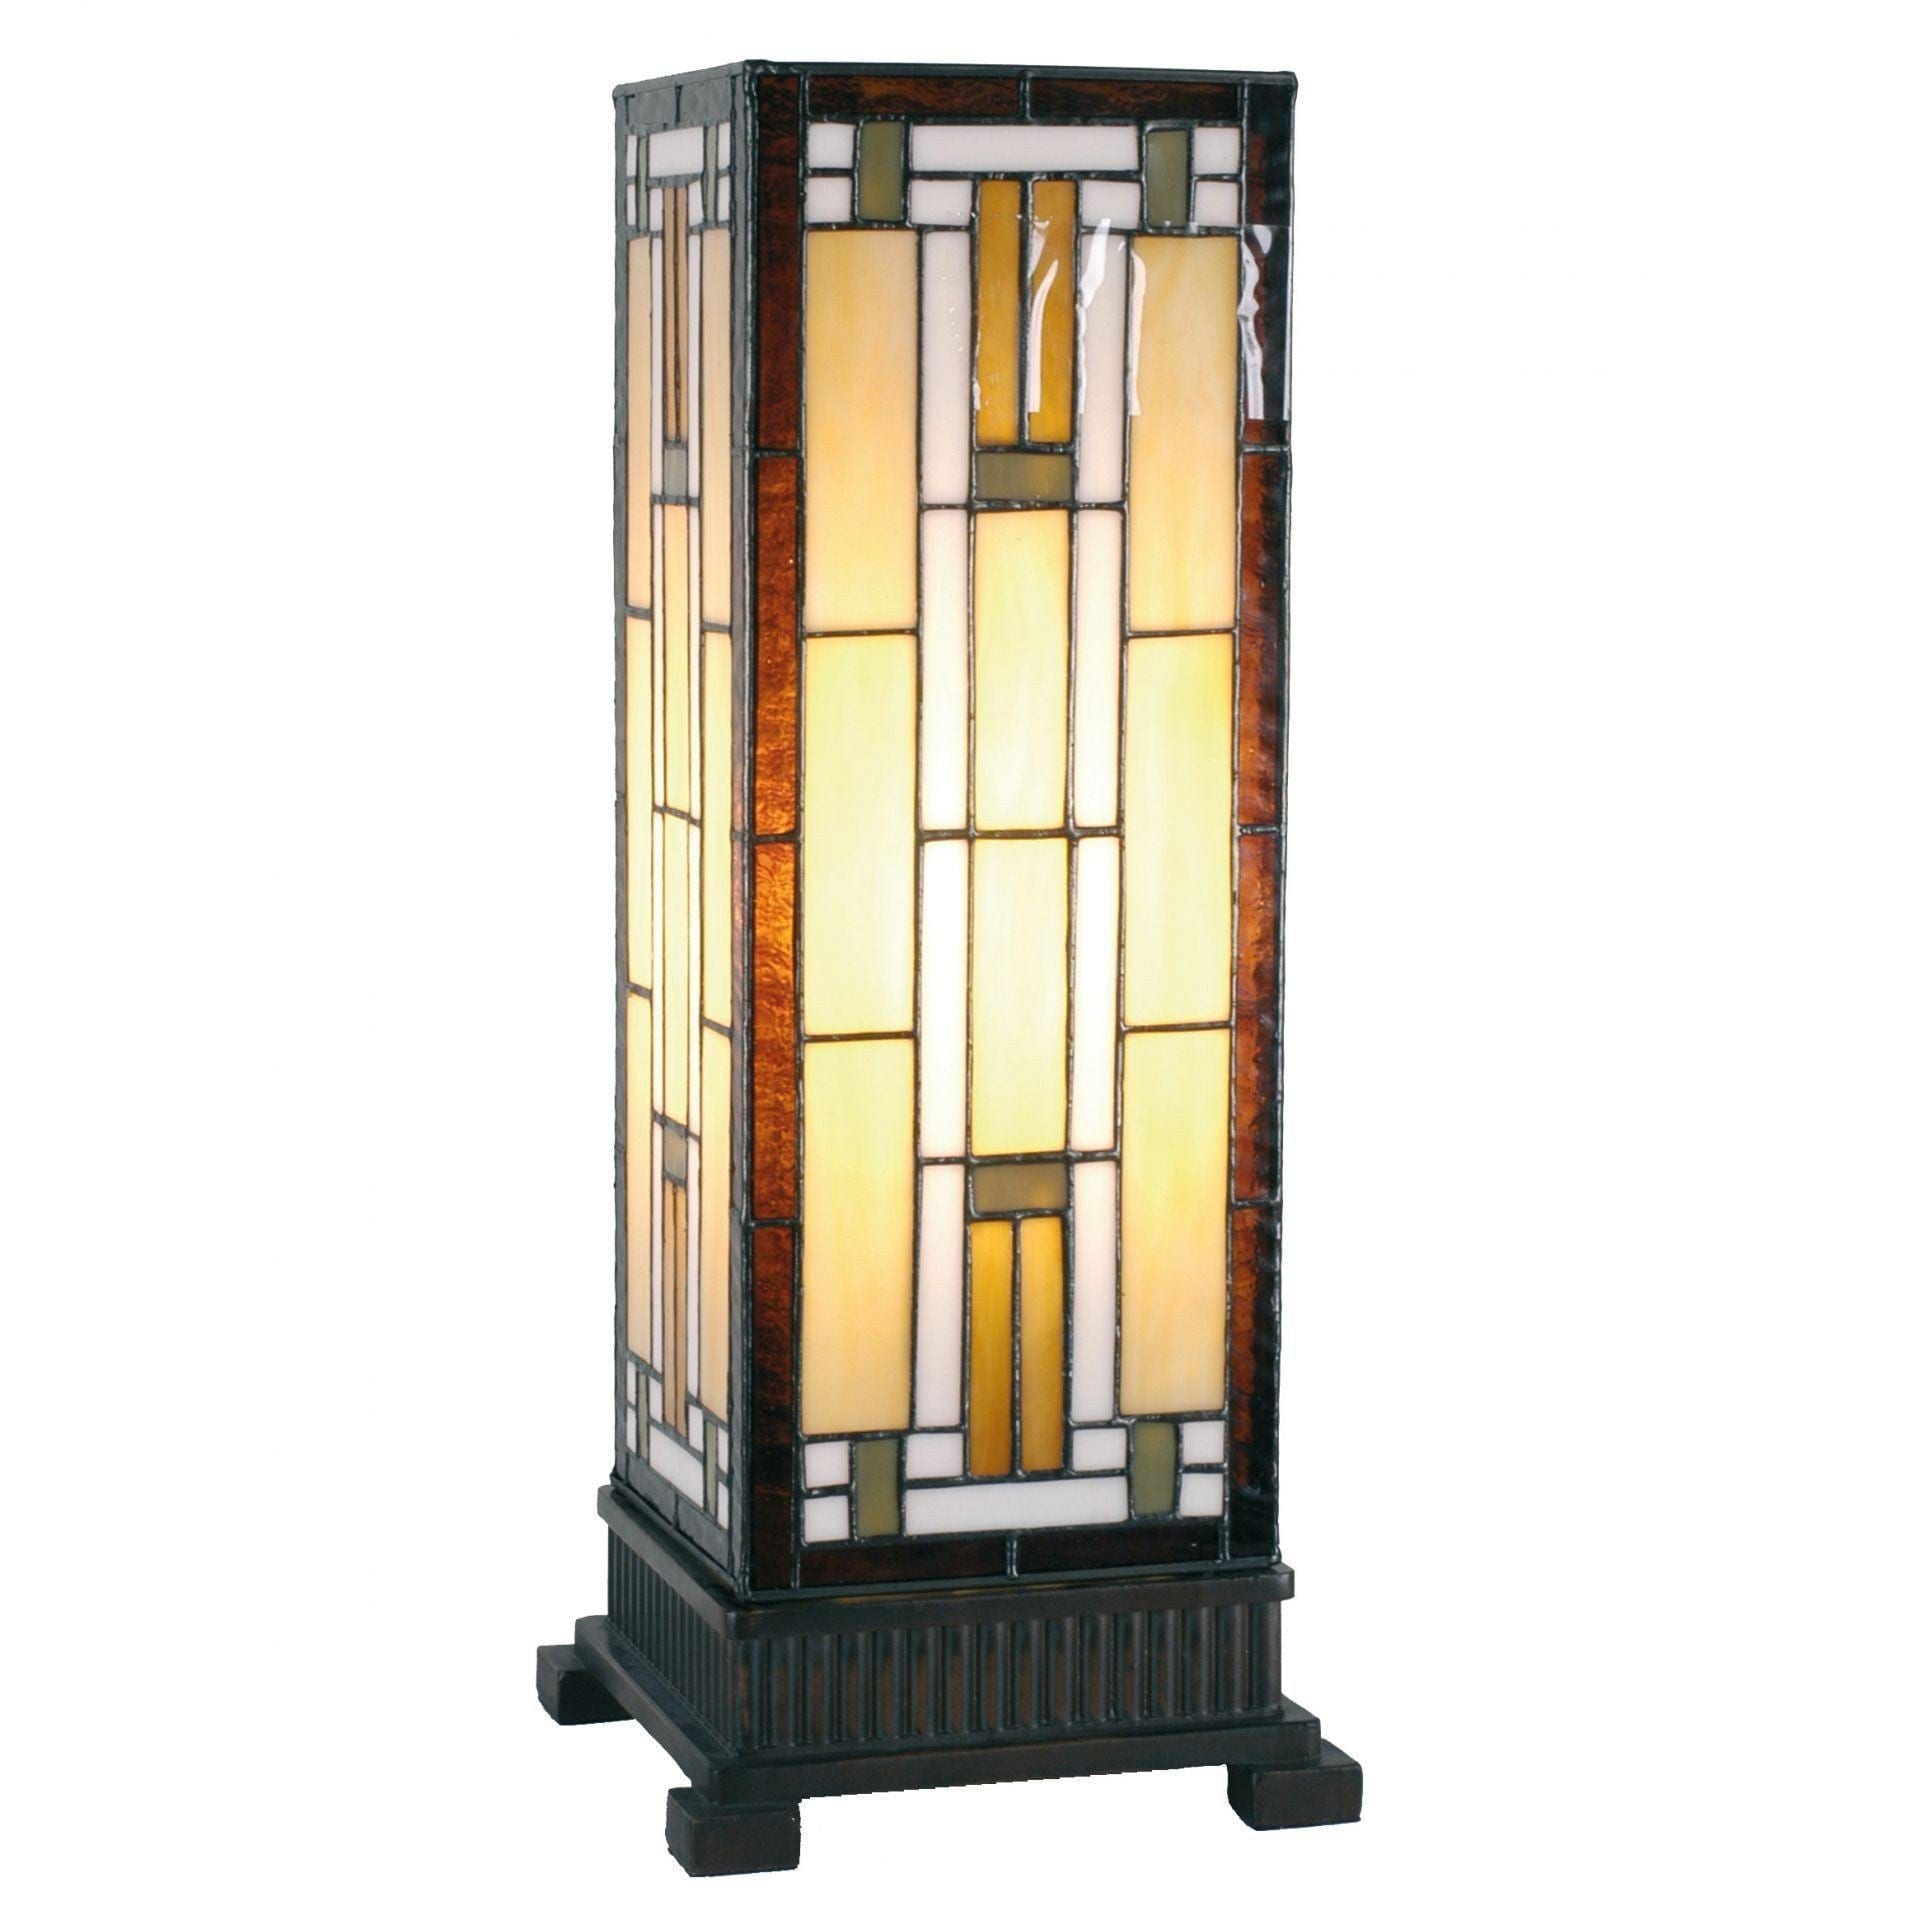 Tiffany Square Table Lamps - Richmond Tiffany Large Square Table Lamp